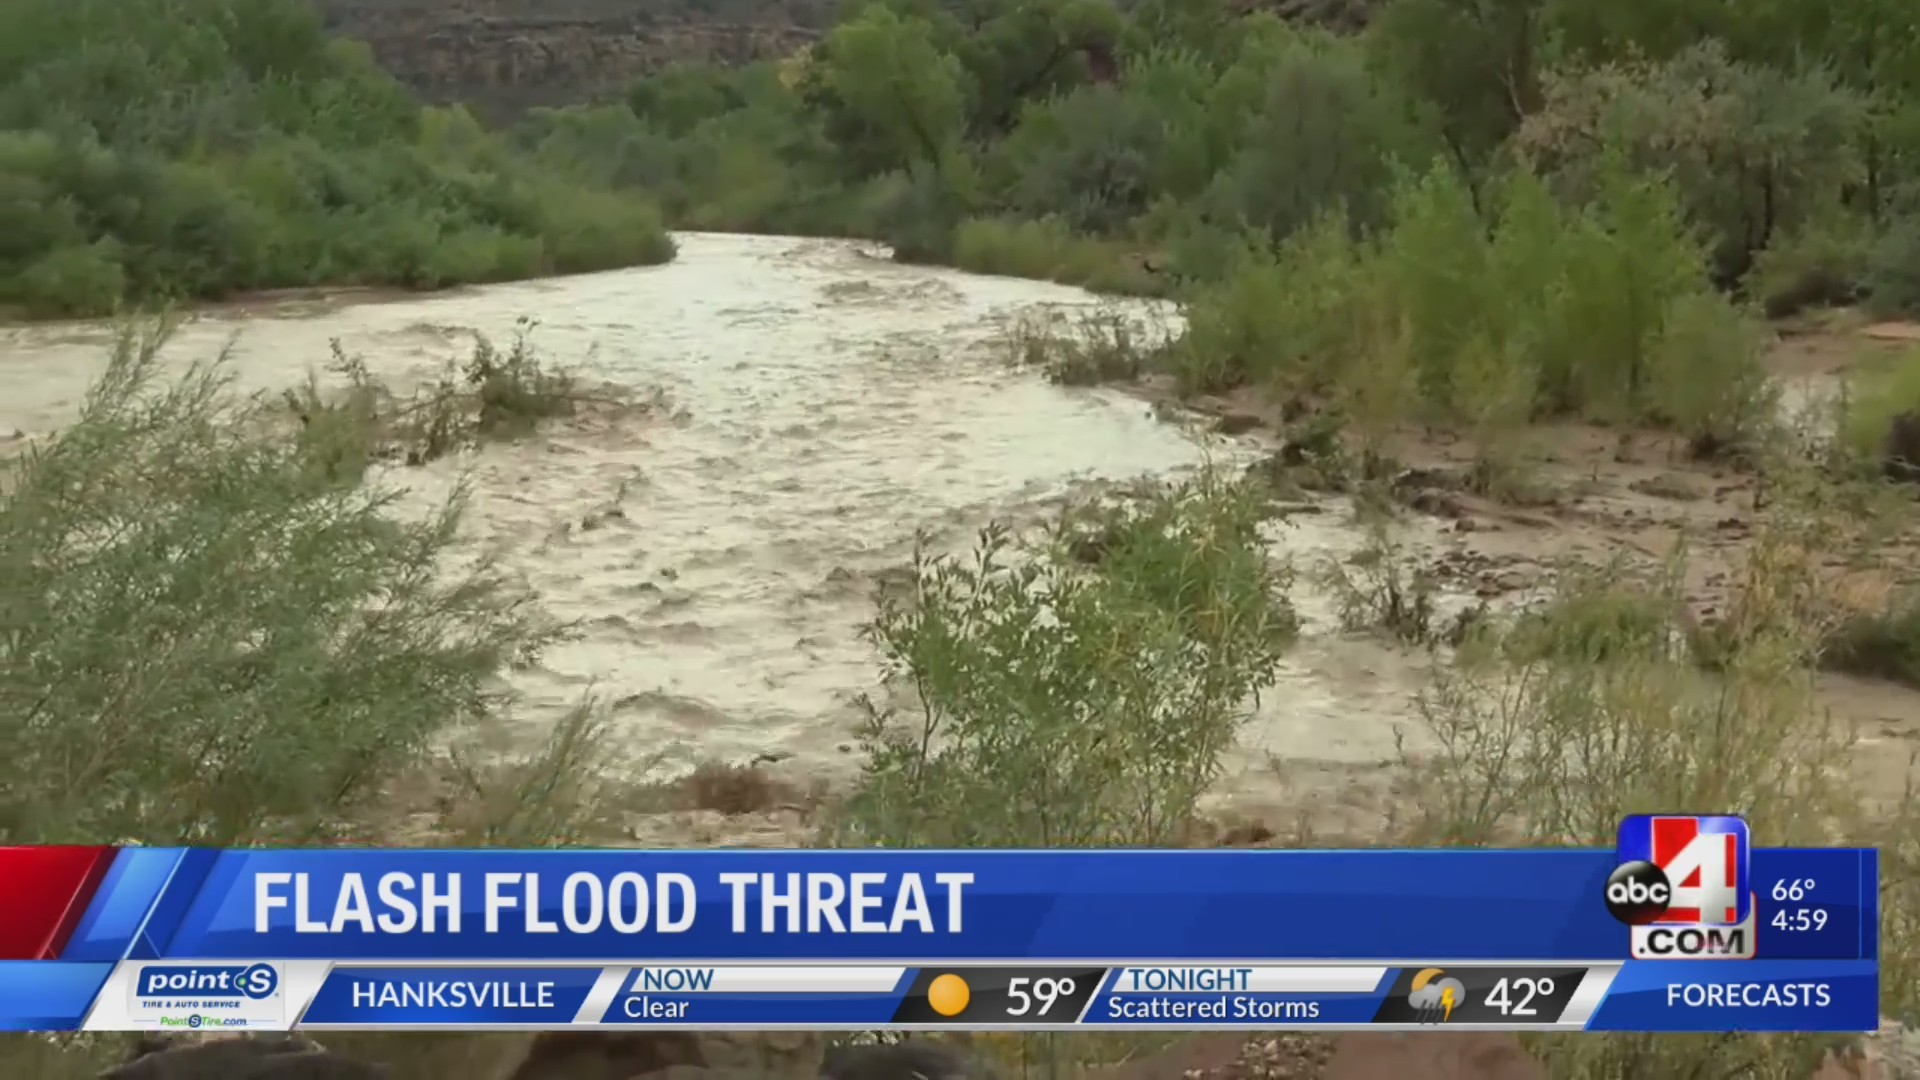 Southern Utah officials urge caution with rivers running high